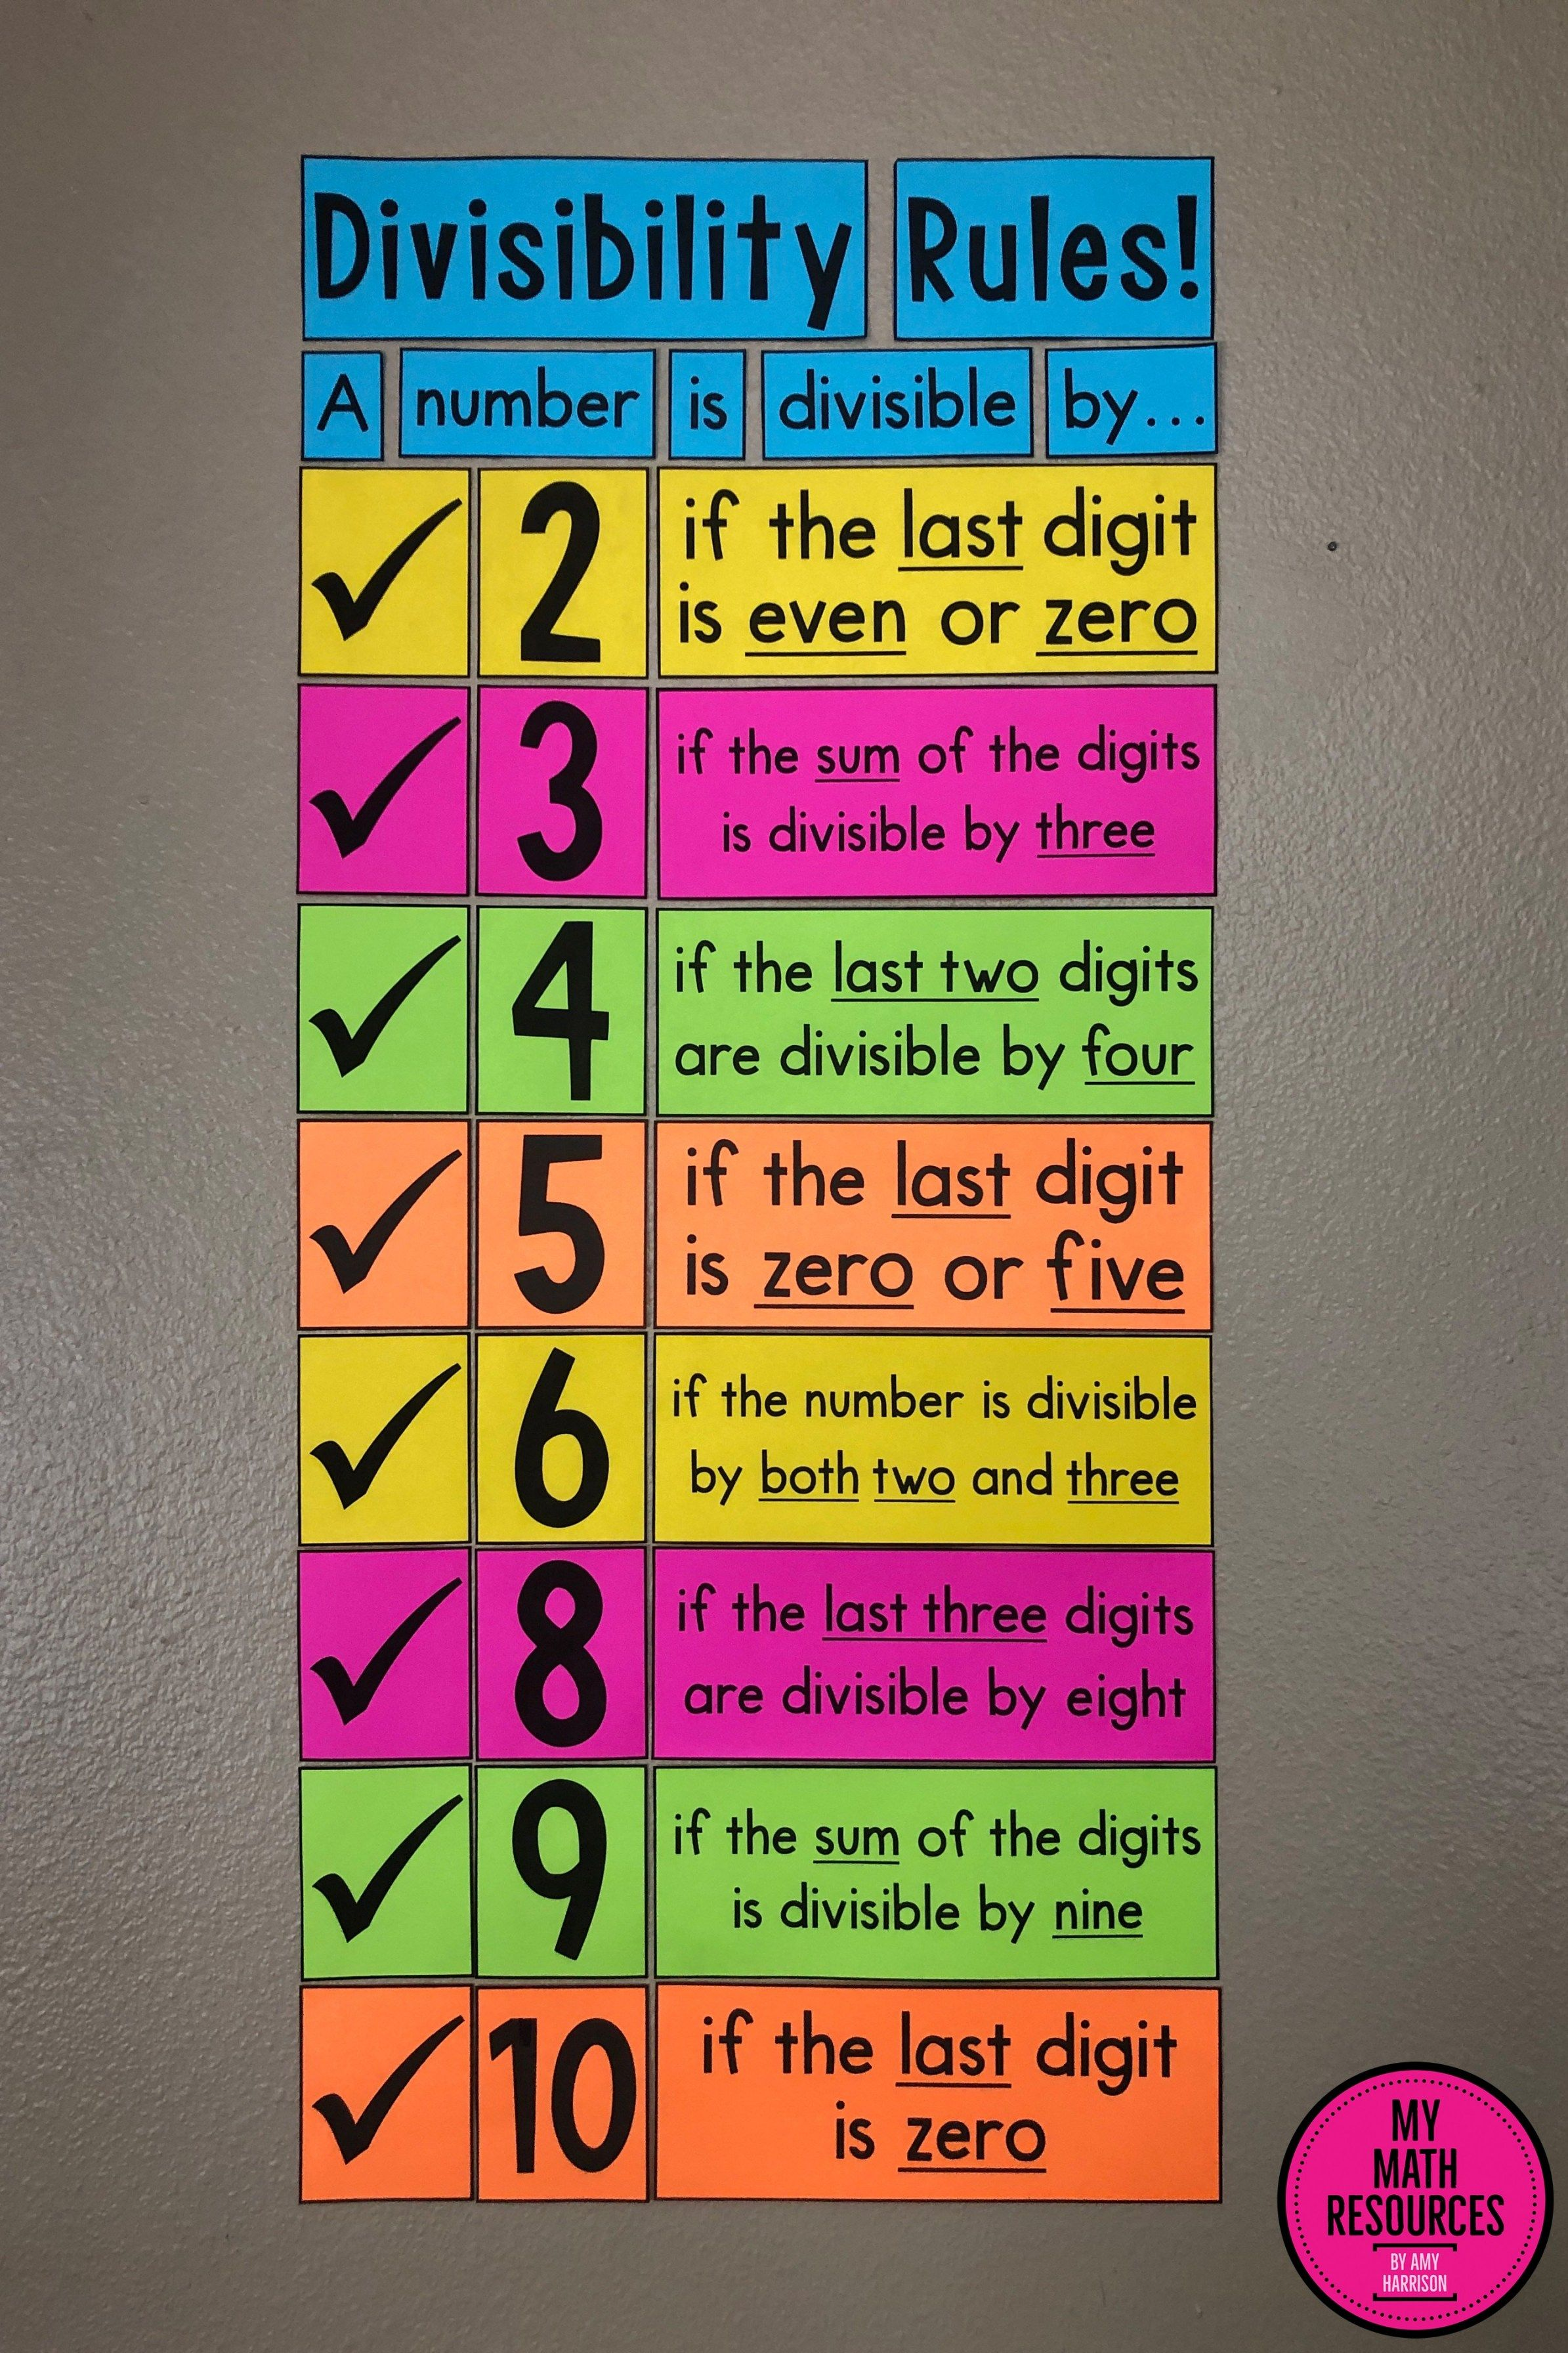 hight resolution of My Math Resources - Divisibility Rules Poster   Math classroom decorations